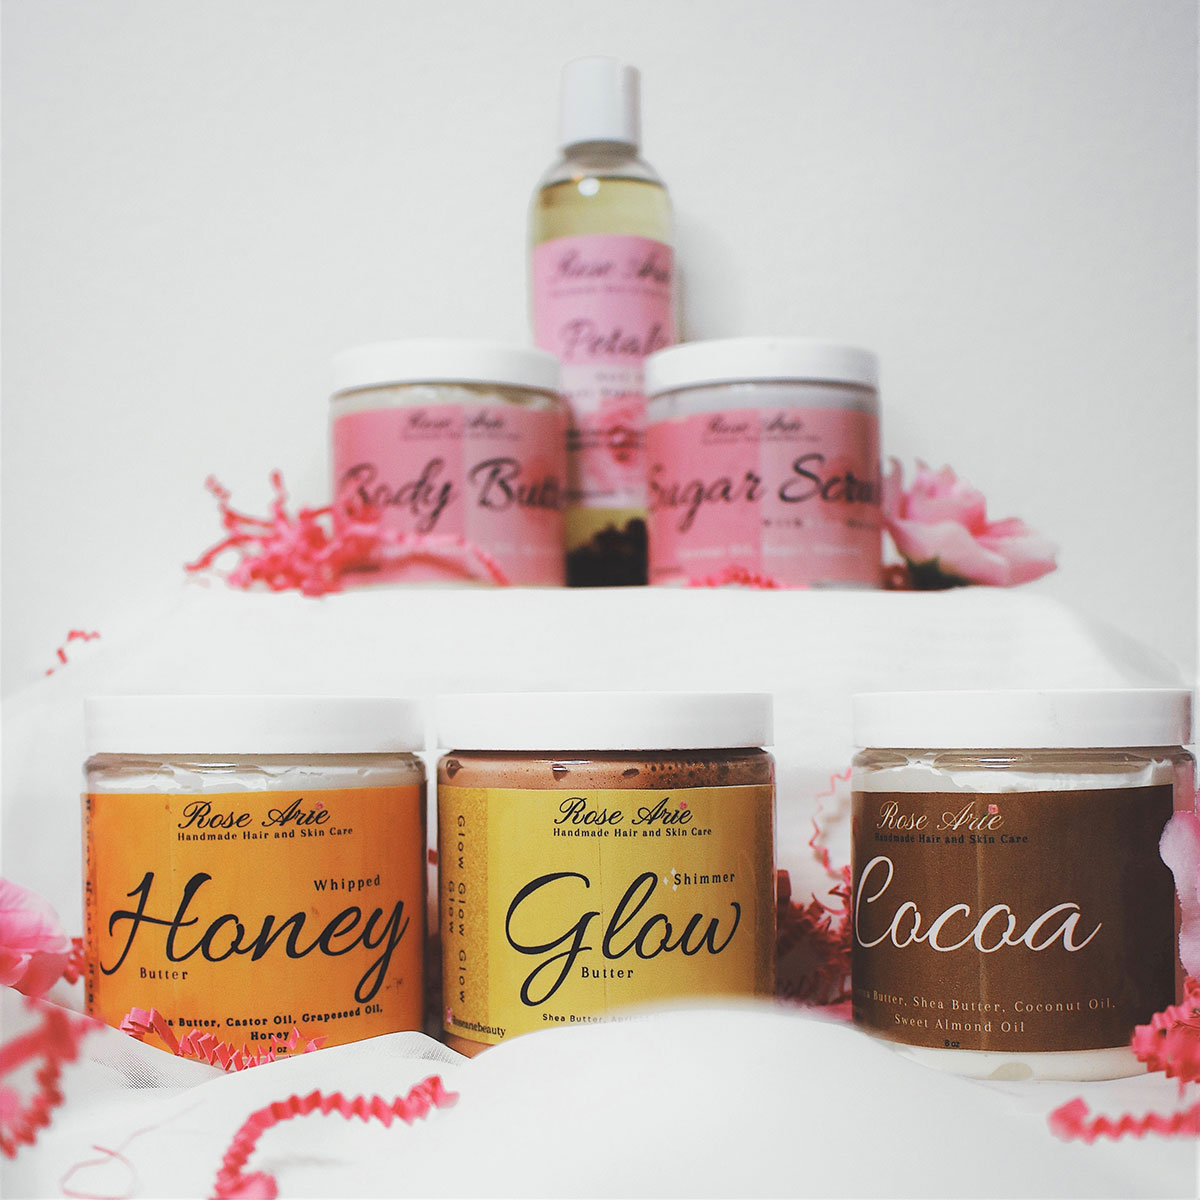 Full line of products by homemade skincare brand Rose Arie Beauty